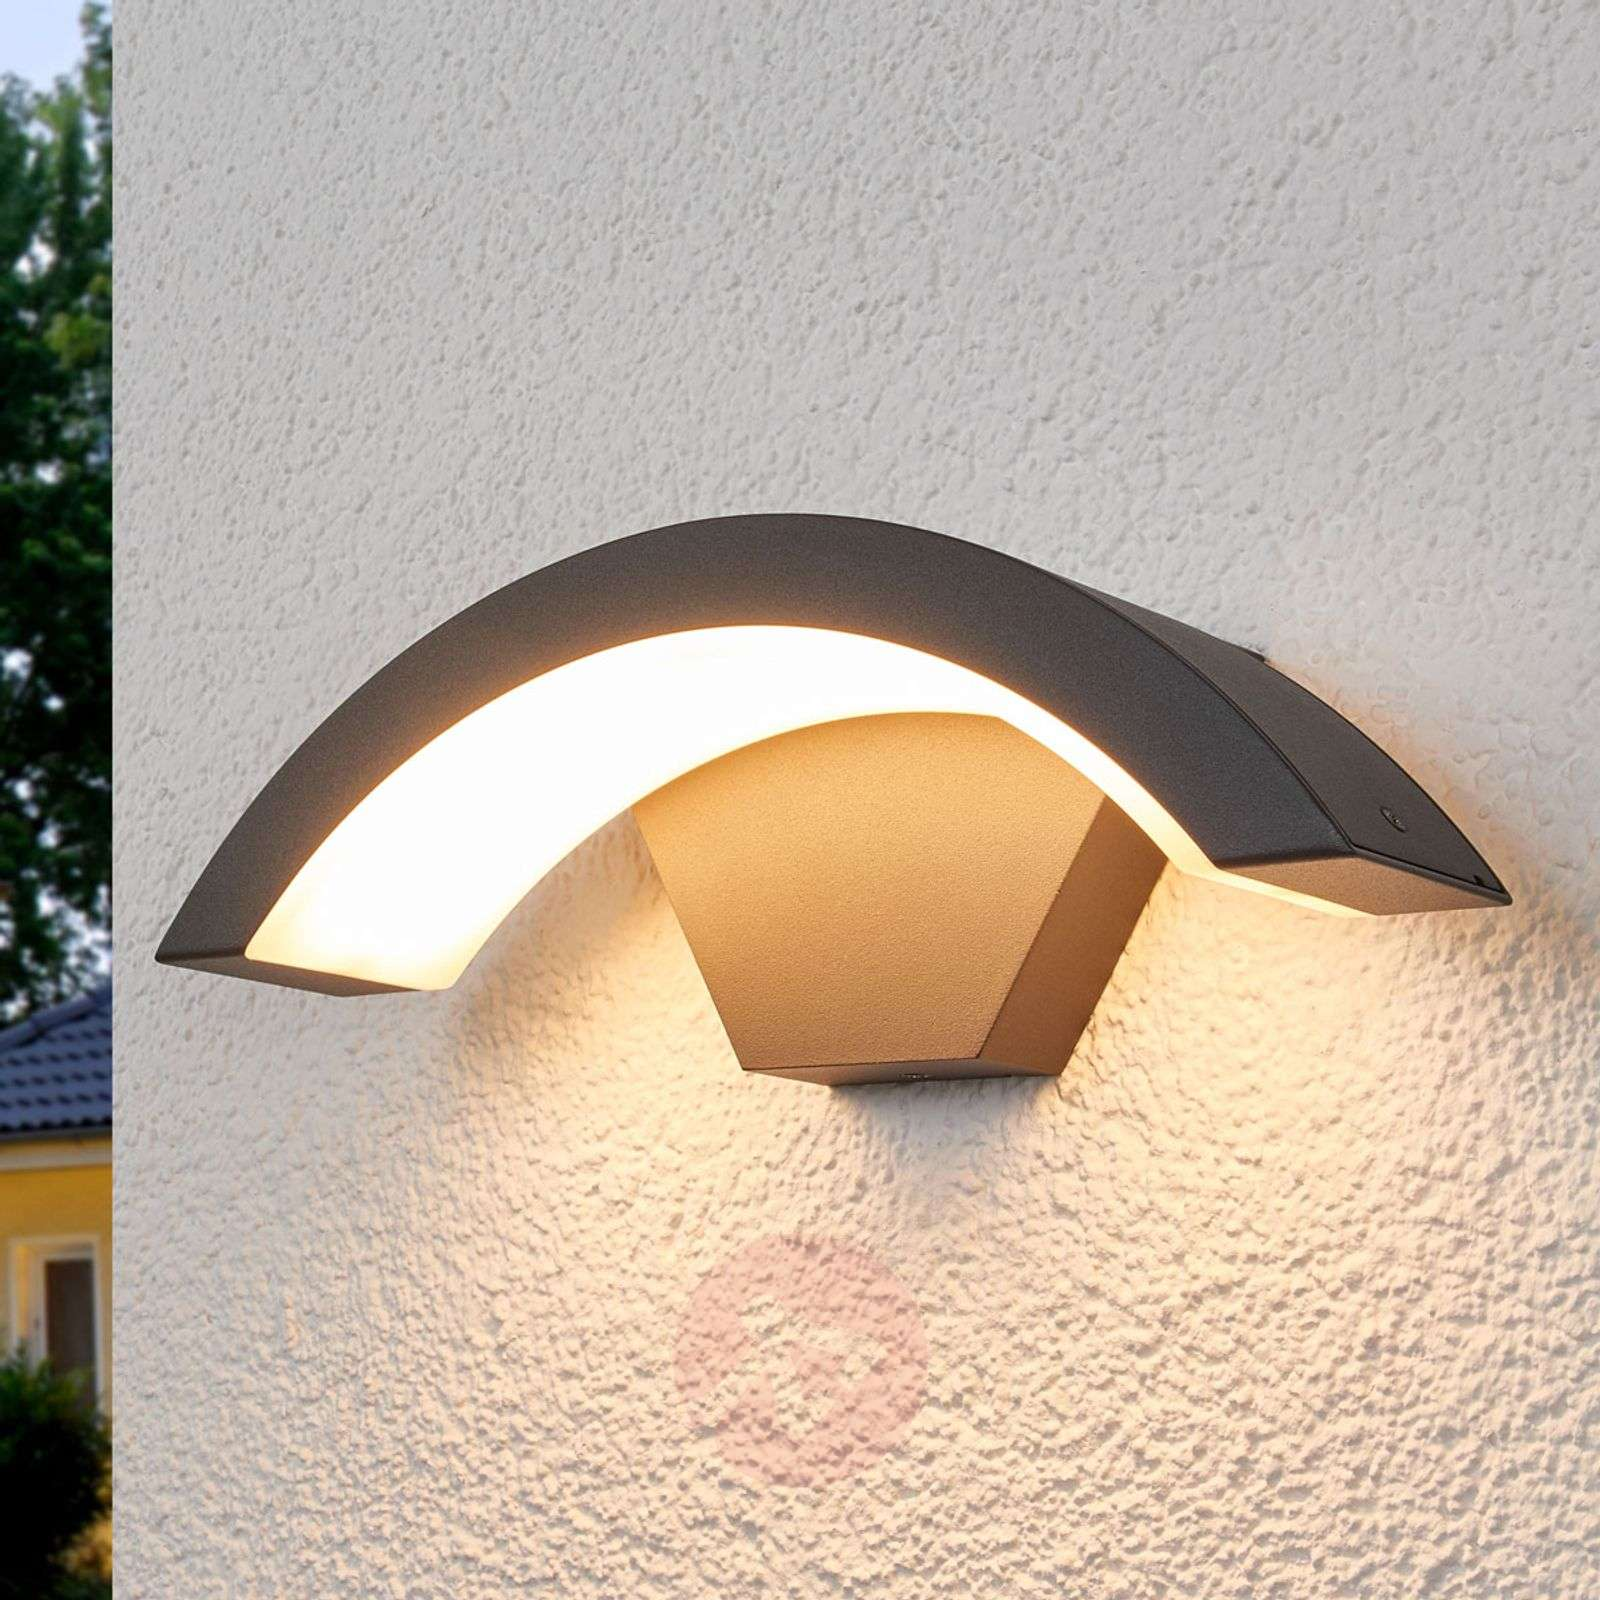 Curved LED outdoor wall light Jule-8032091-02